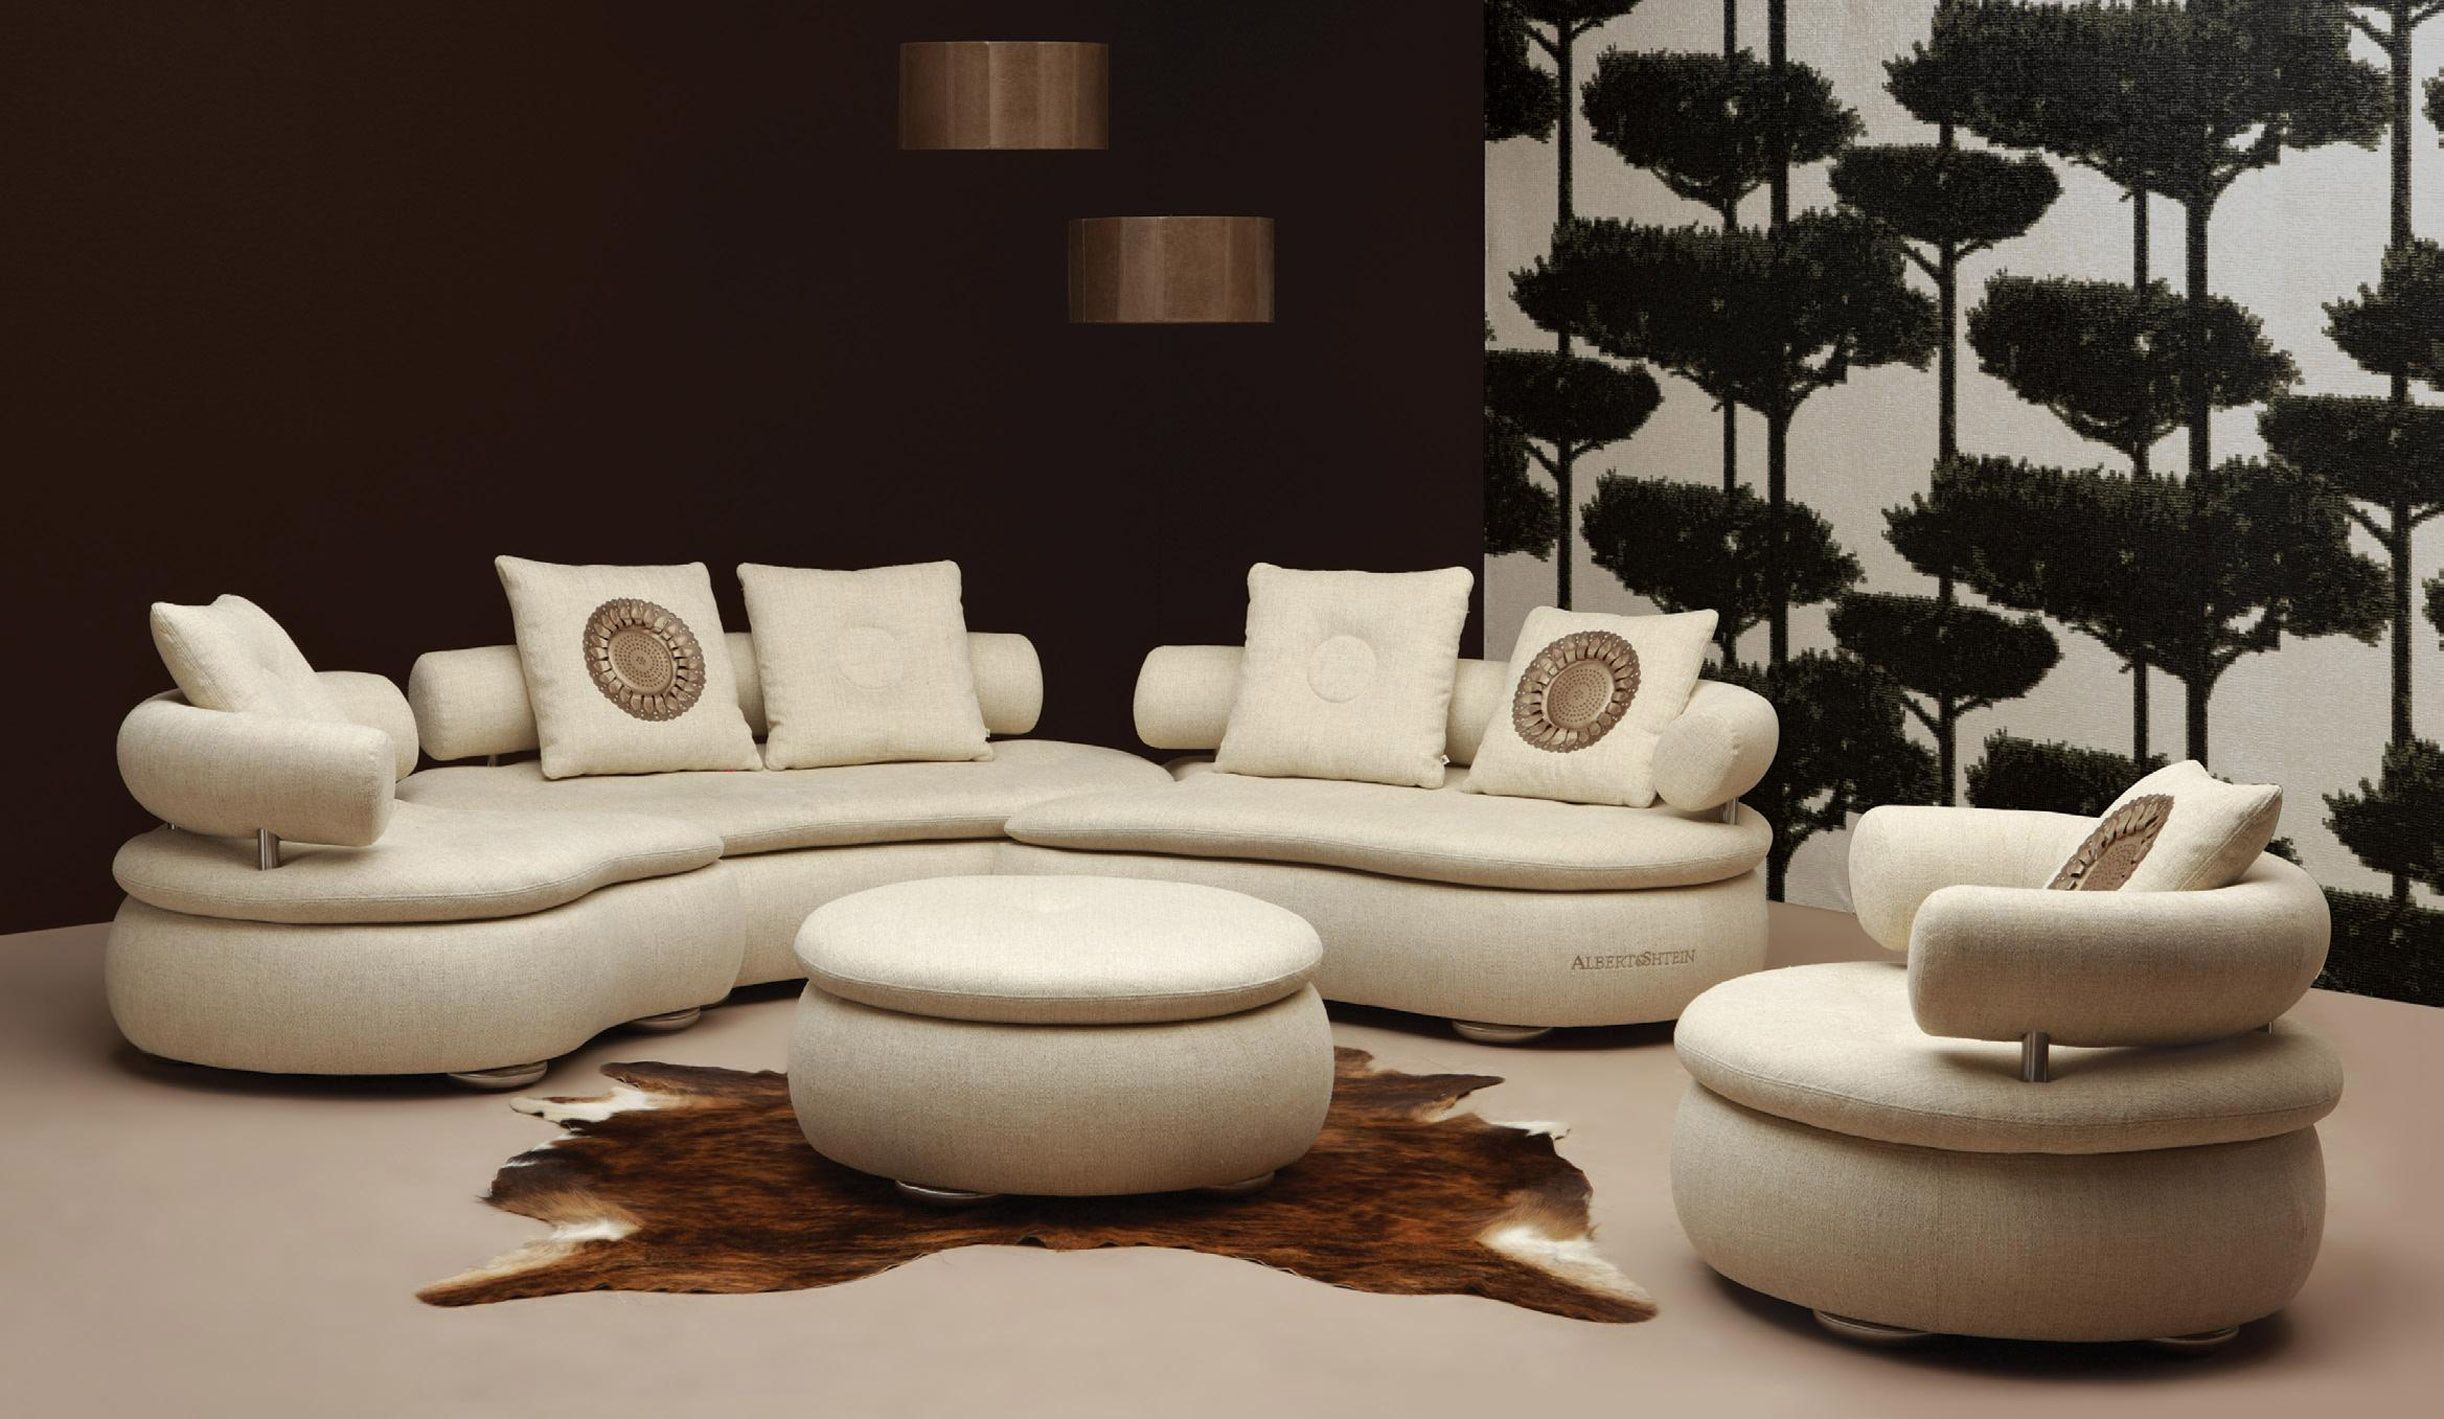 Pleasureable Black Floral Wall Decals And Broken White Vinyl Unique  Sectional Cool Couches With Rounded Upholstery Coffee Table On Cow Rug Ideas